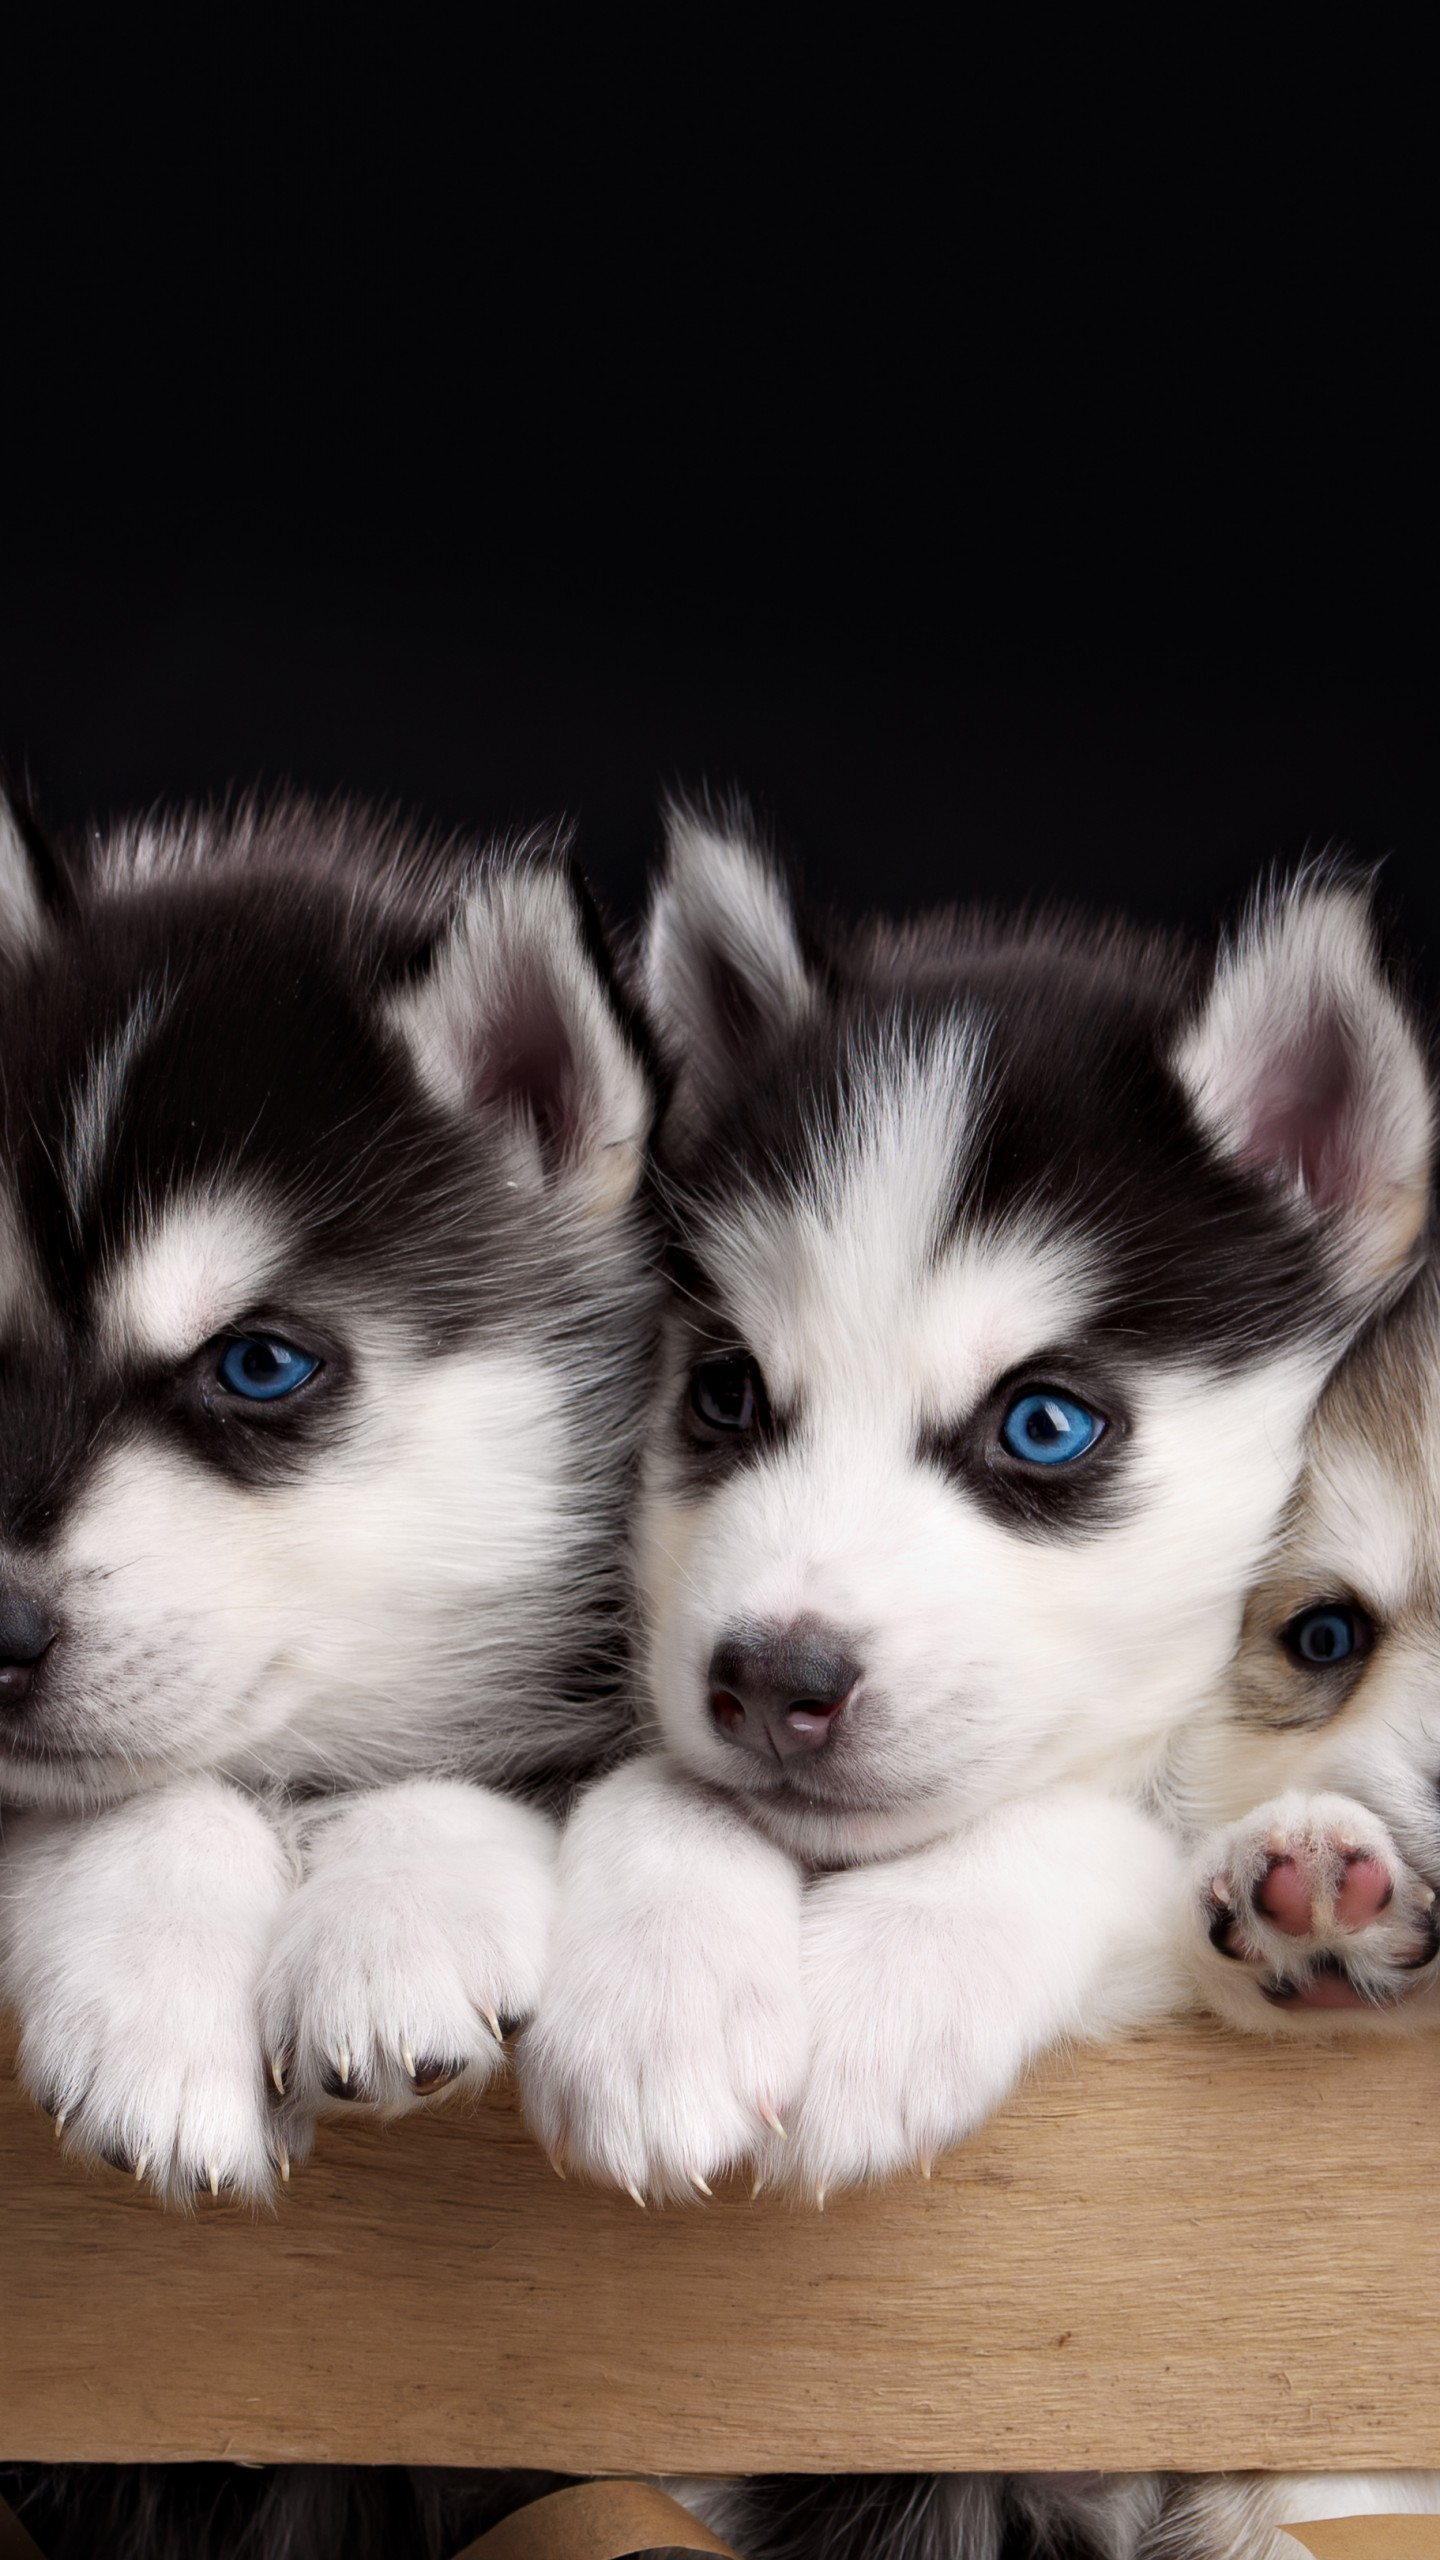 Cute Pet Animals Hd Wallpapers Wallpaper Husky Puppy Cute Animals 4k Animals 17835